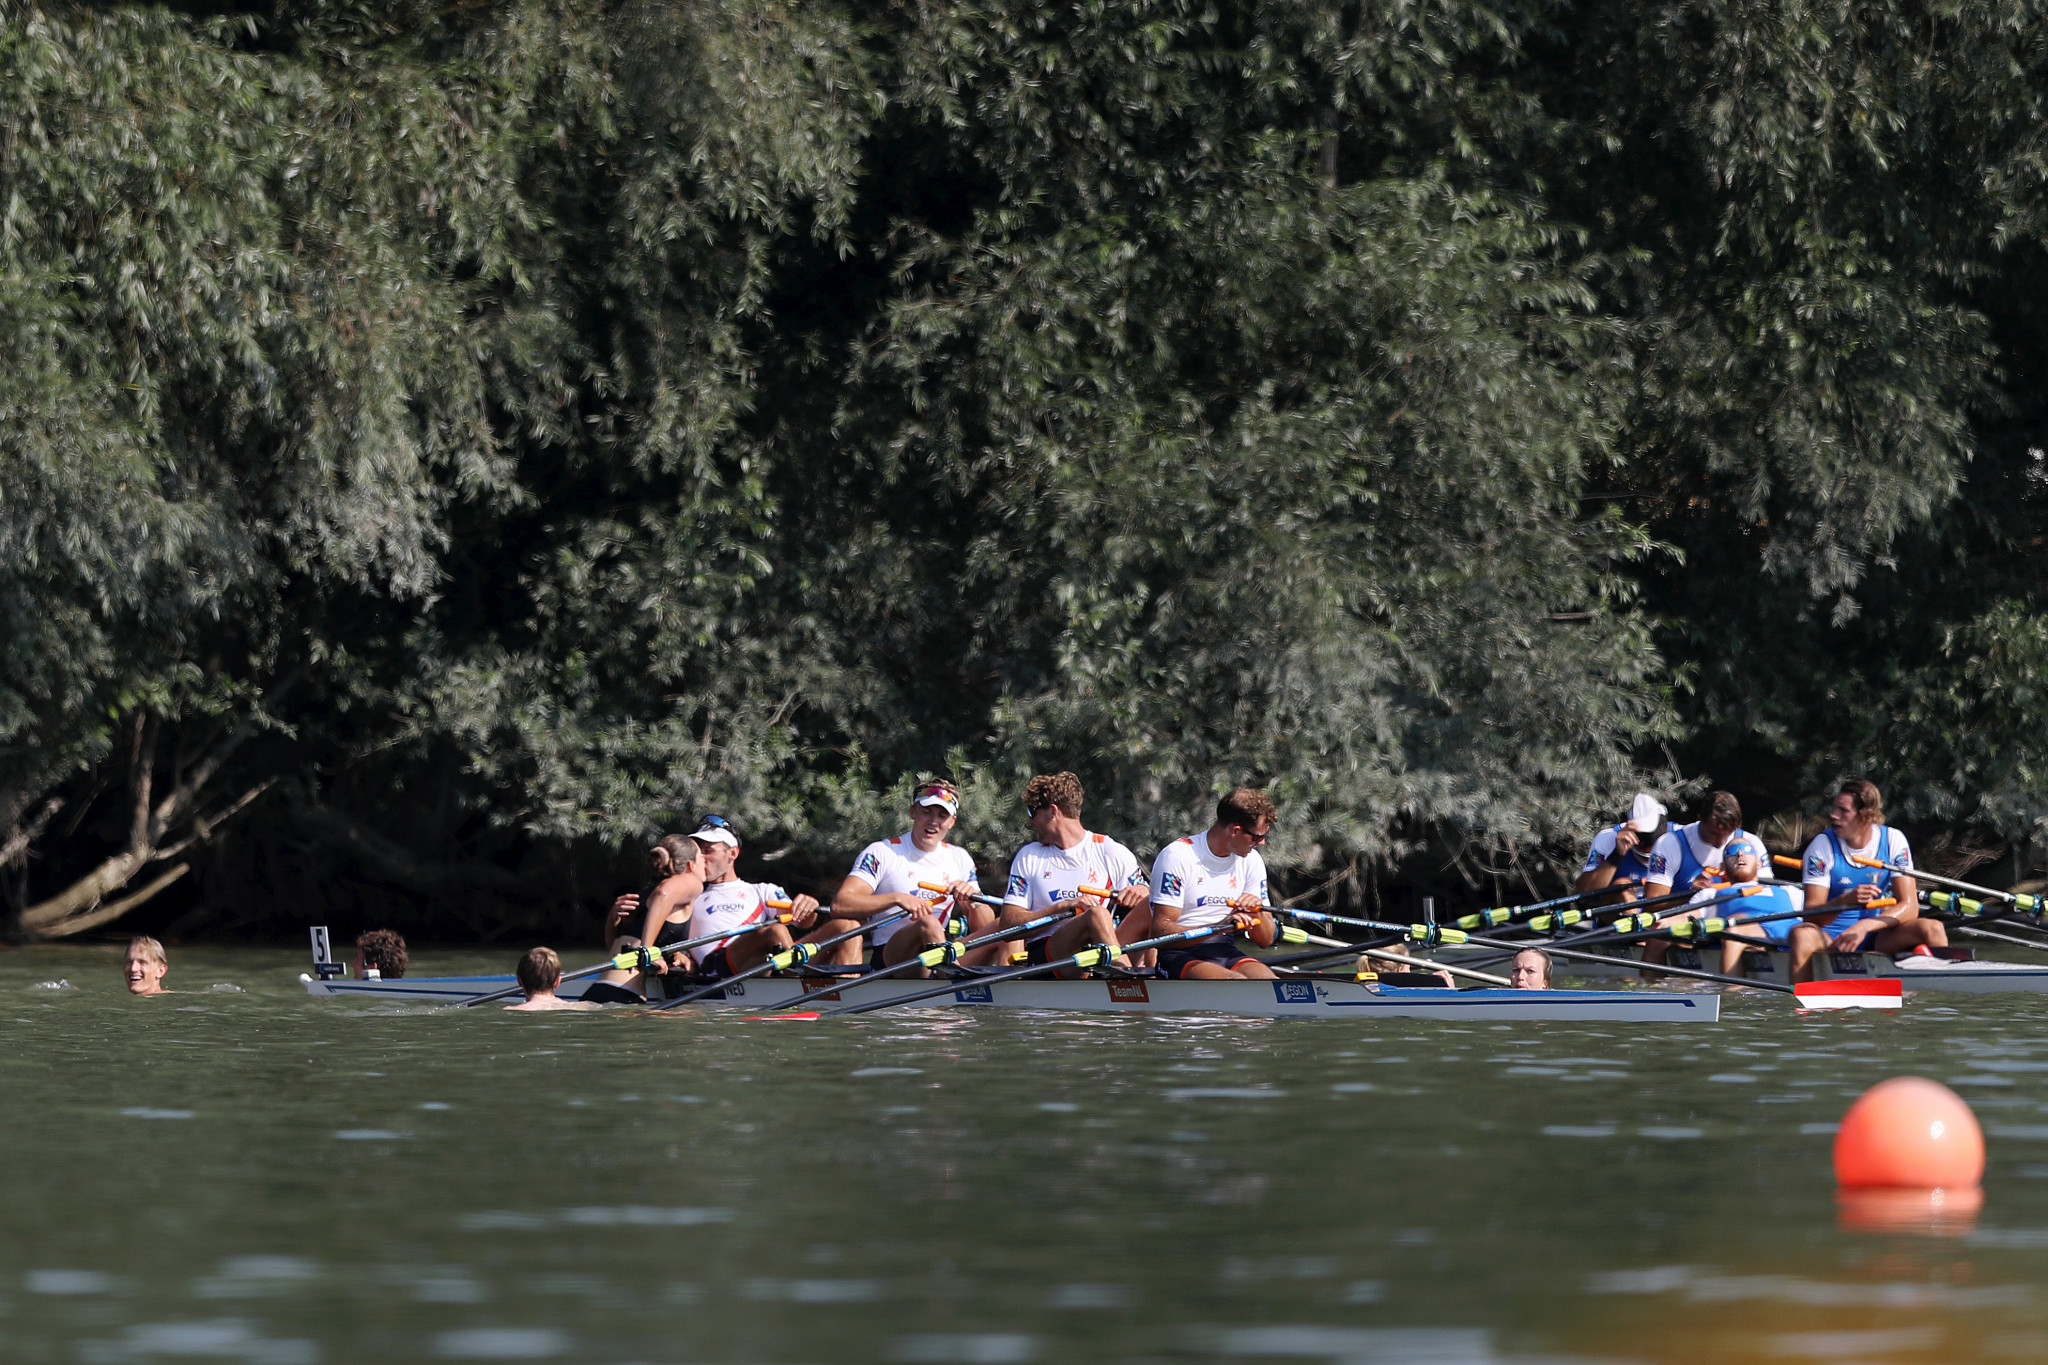 Poland spring surprise with men's four gold at World Rowing Championships